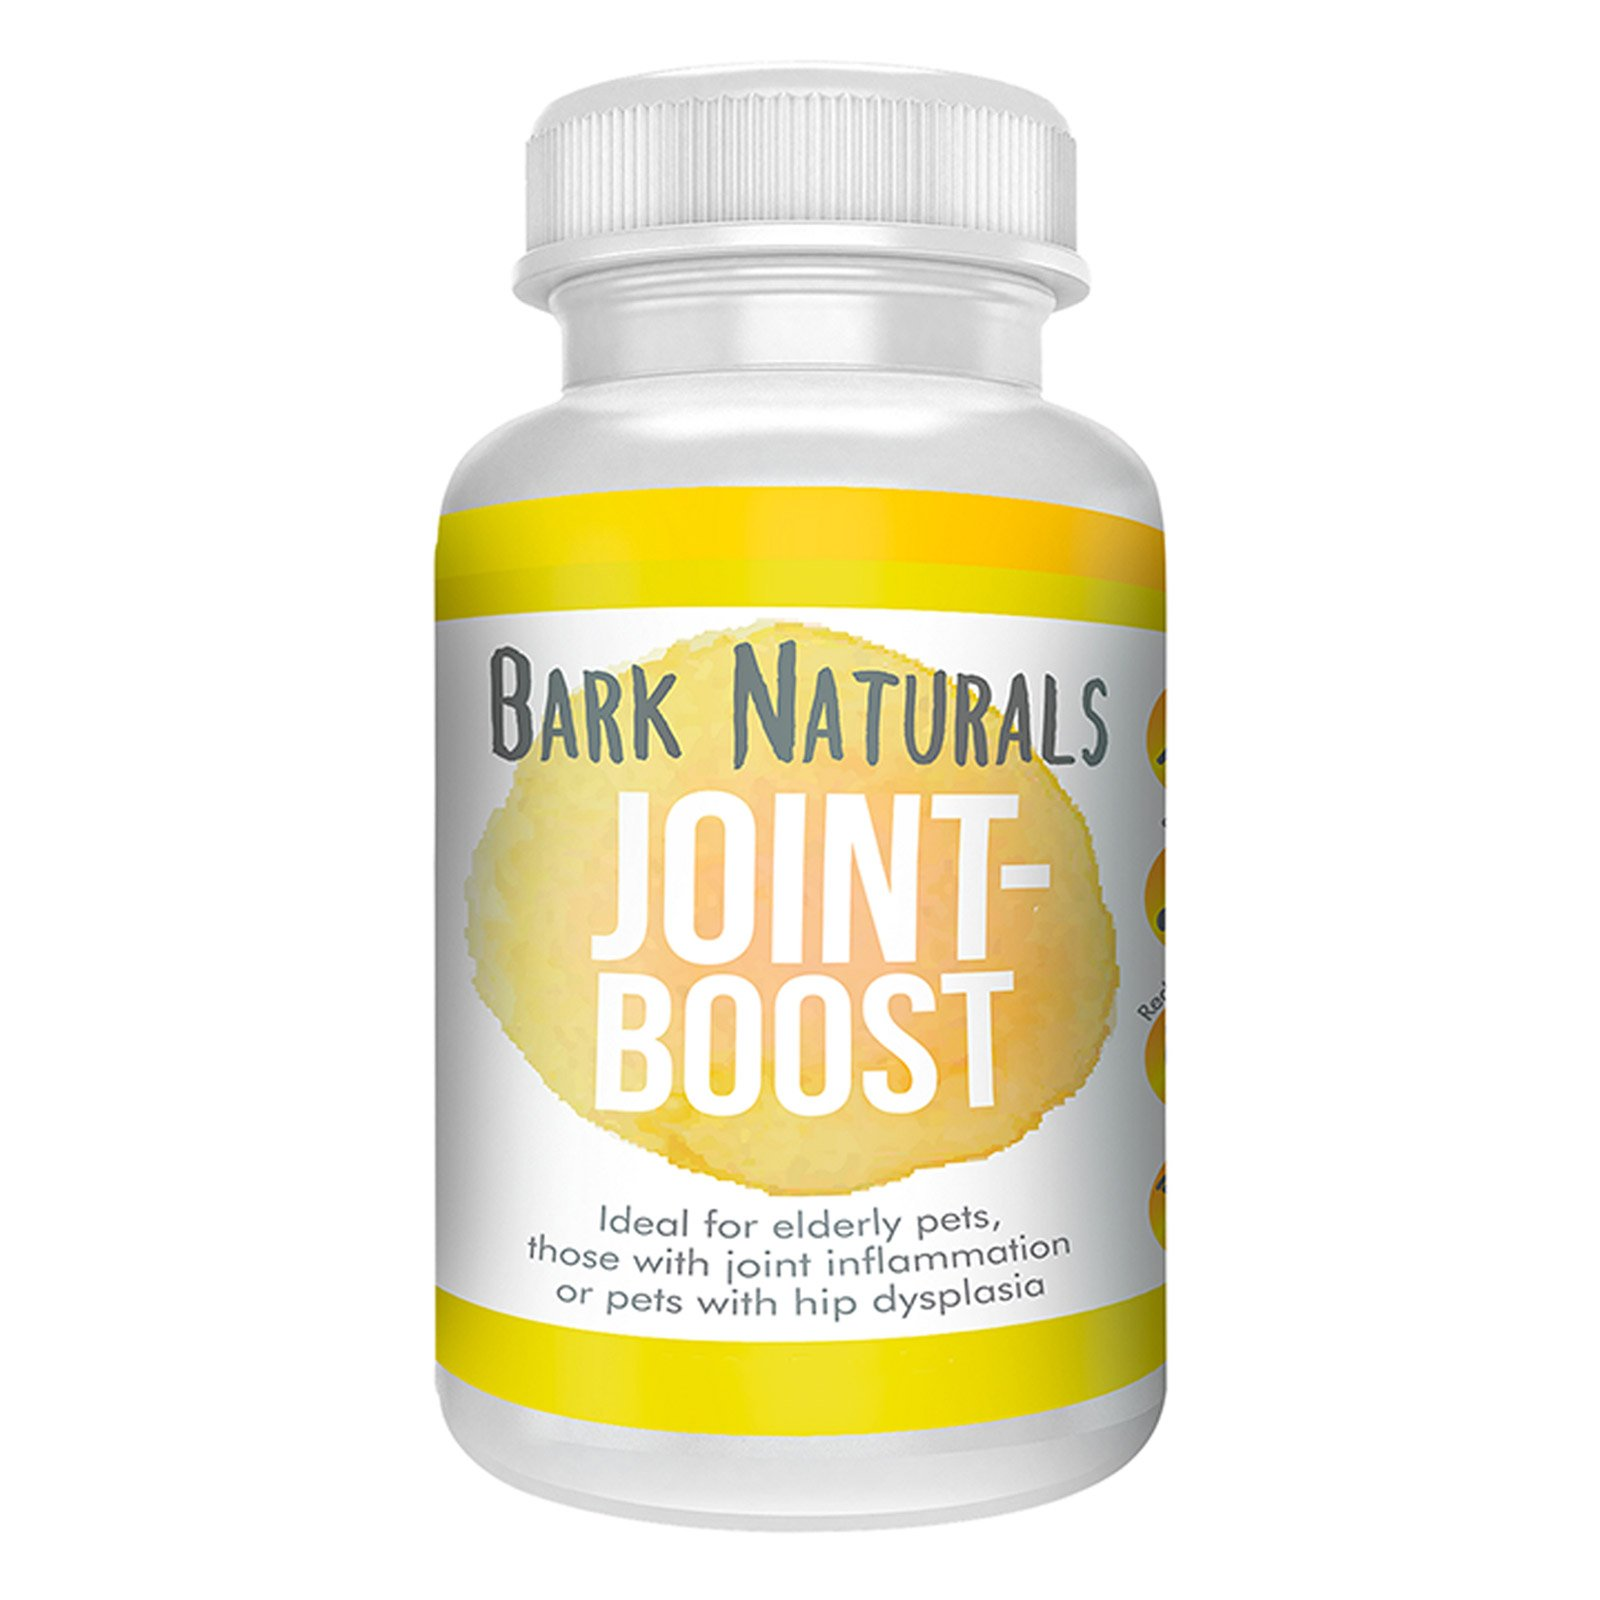 Bark-Naturals-Joint-Boost-Powder-For-Dogs-100gm.jpg